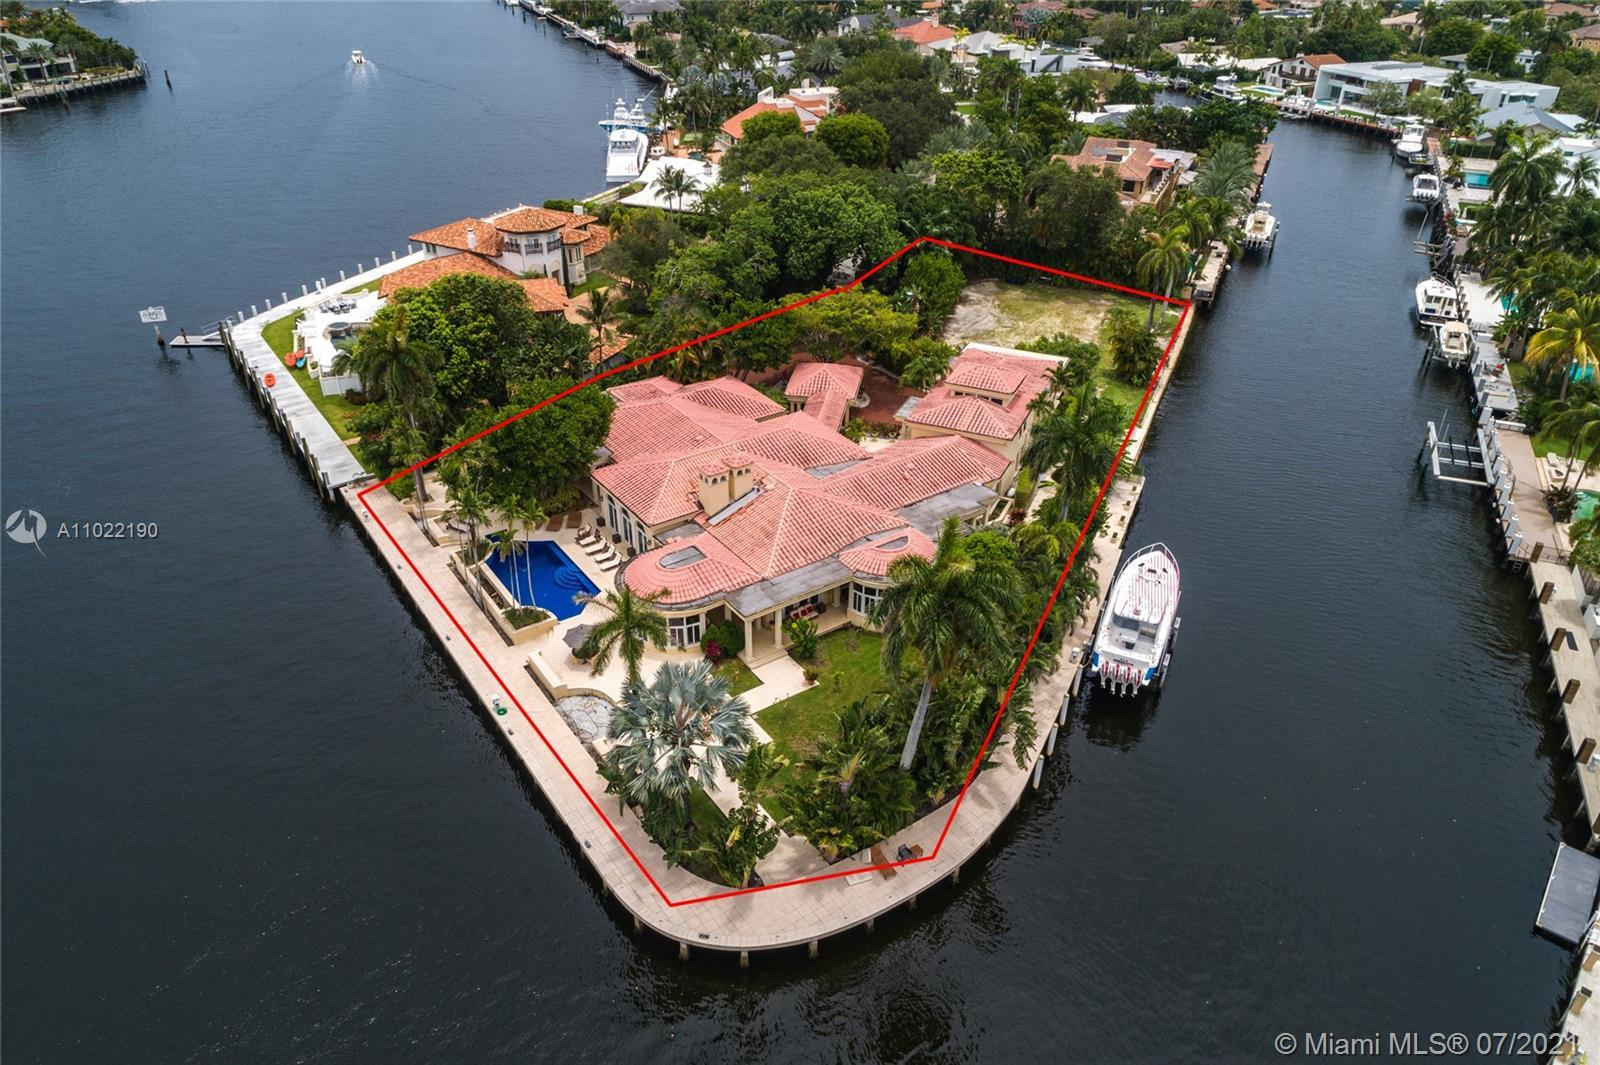 Luxurious Estate in Las Olas! Idyllically located on a private 1.14-acre point lot on the Rio Grande